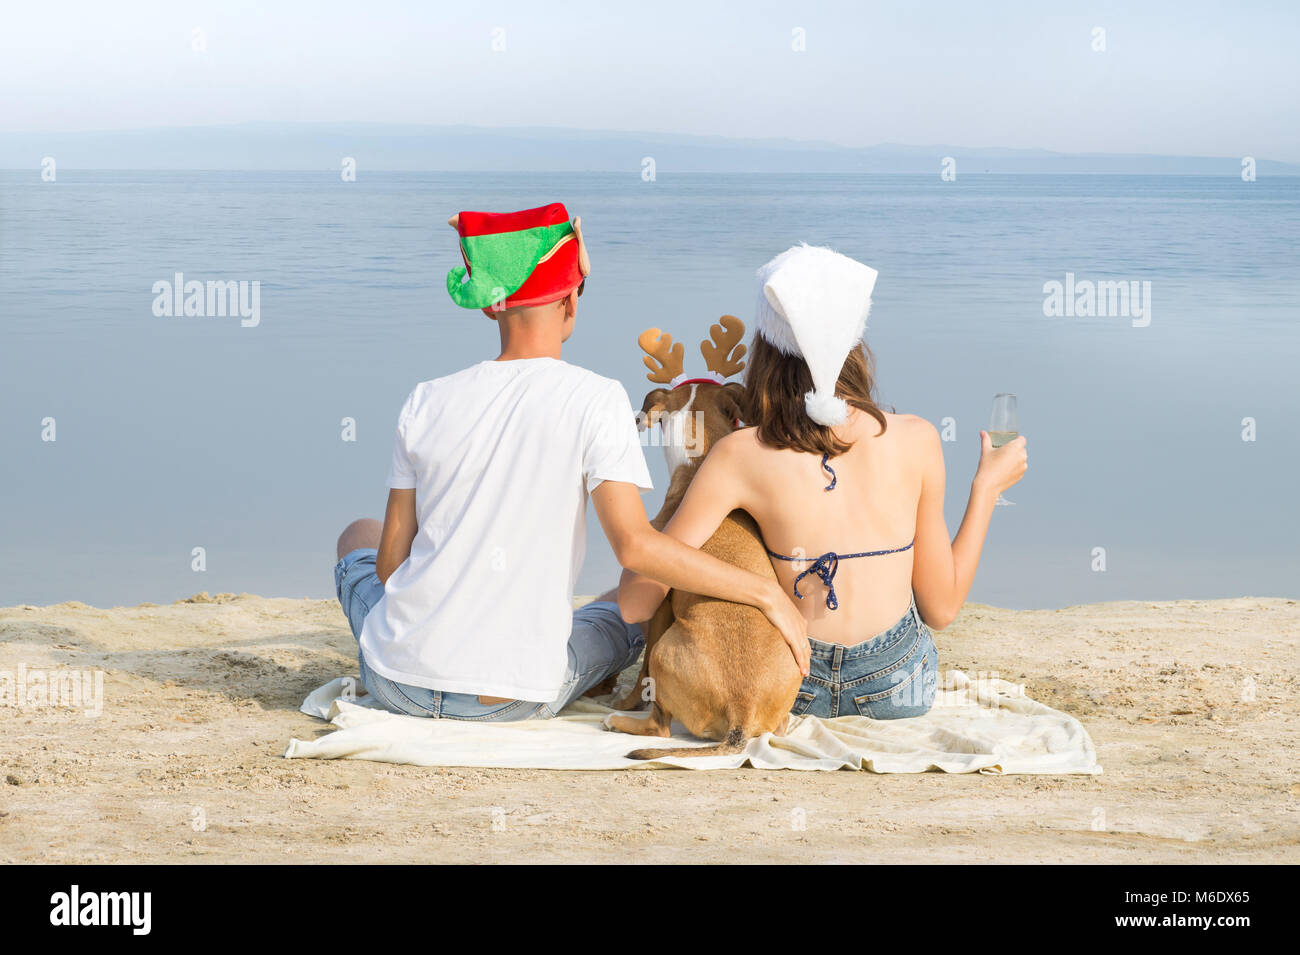 Man, woman and puppy in funny new year hats spend time at seaside - Stock Image